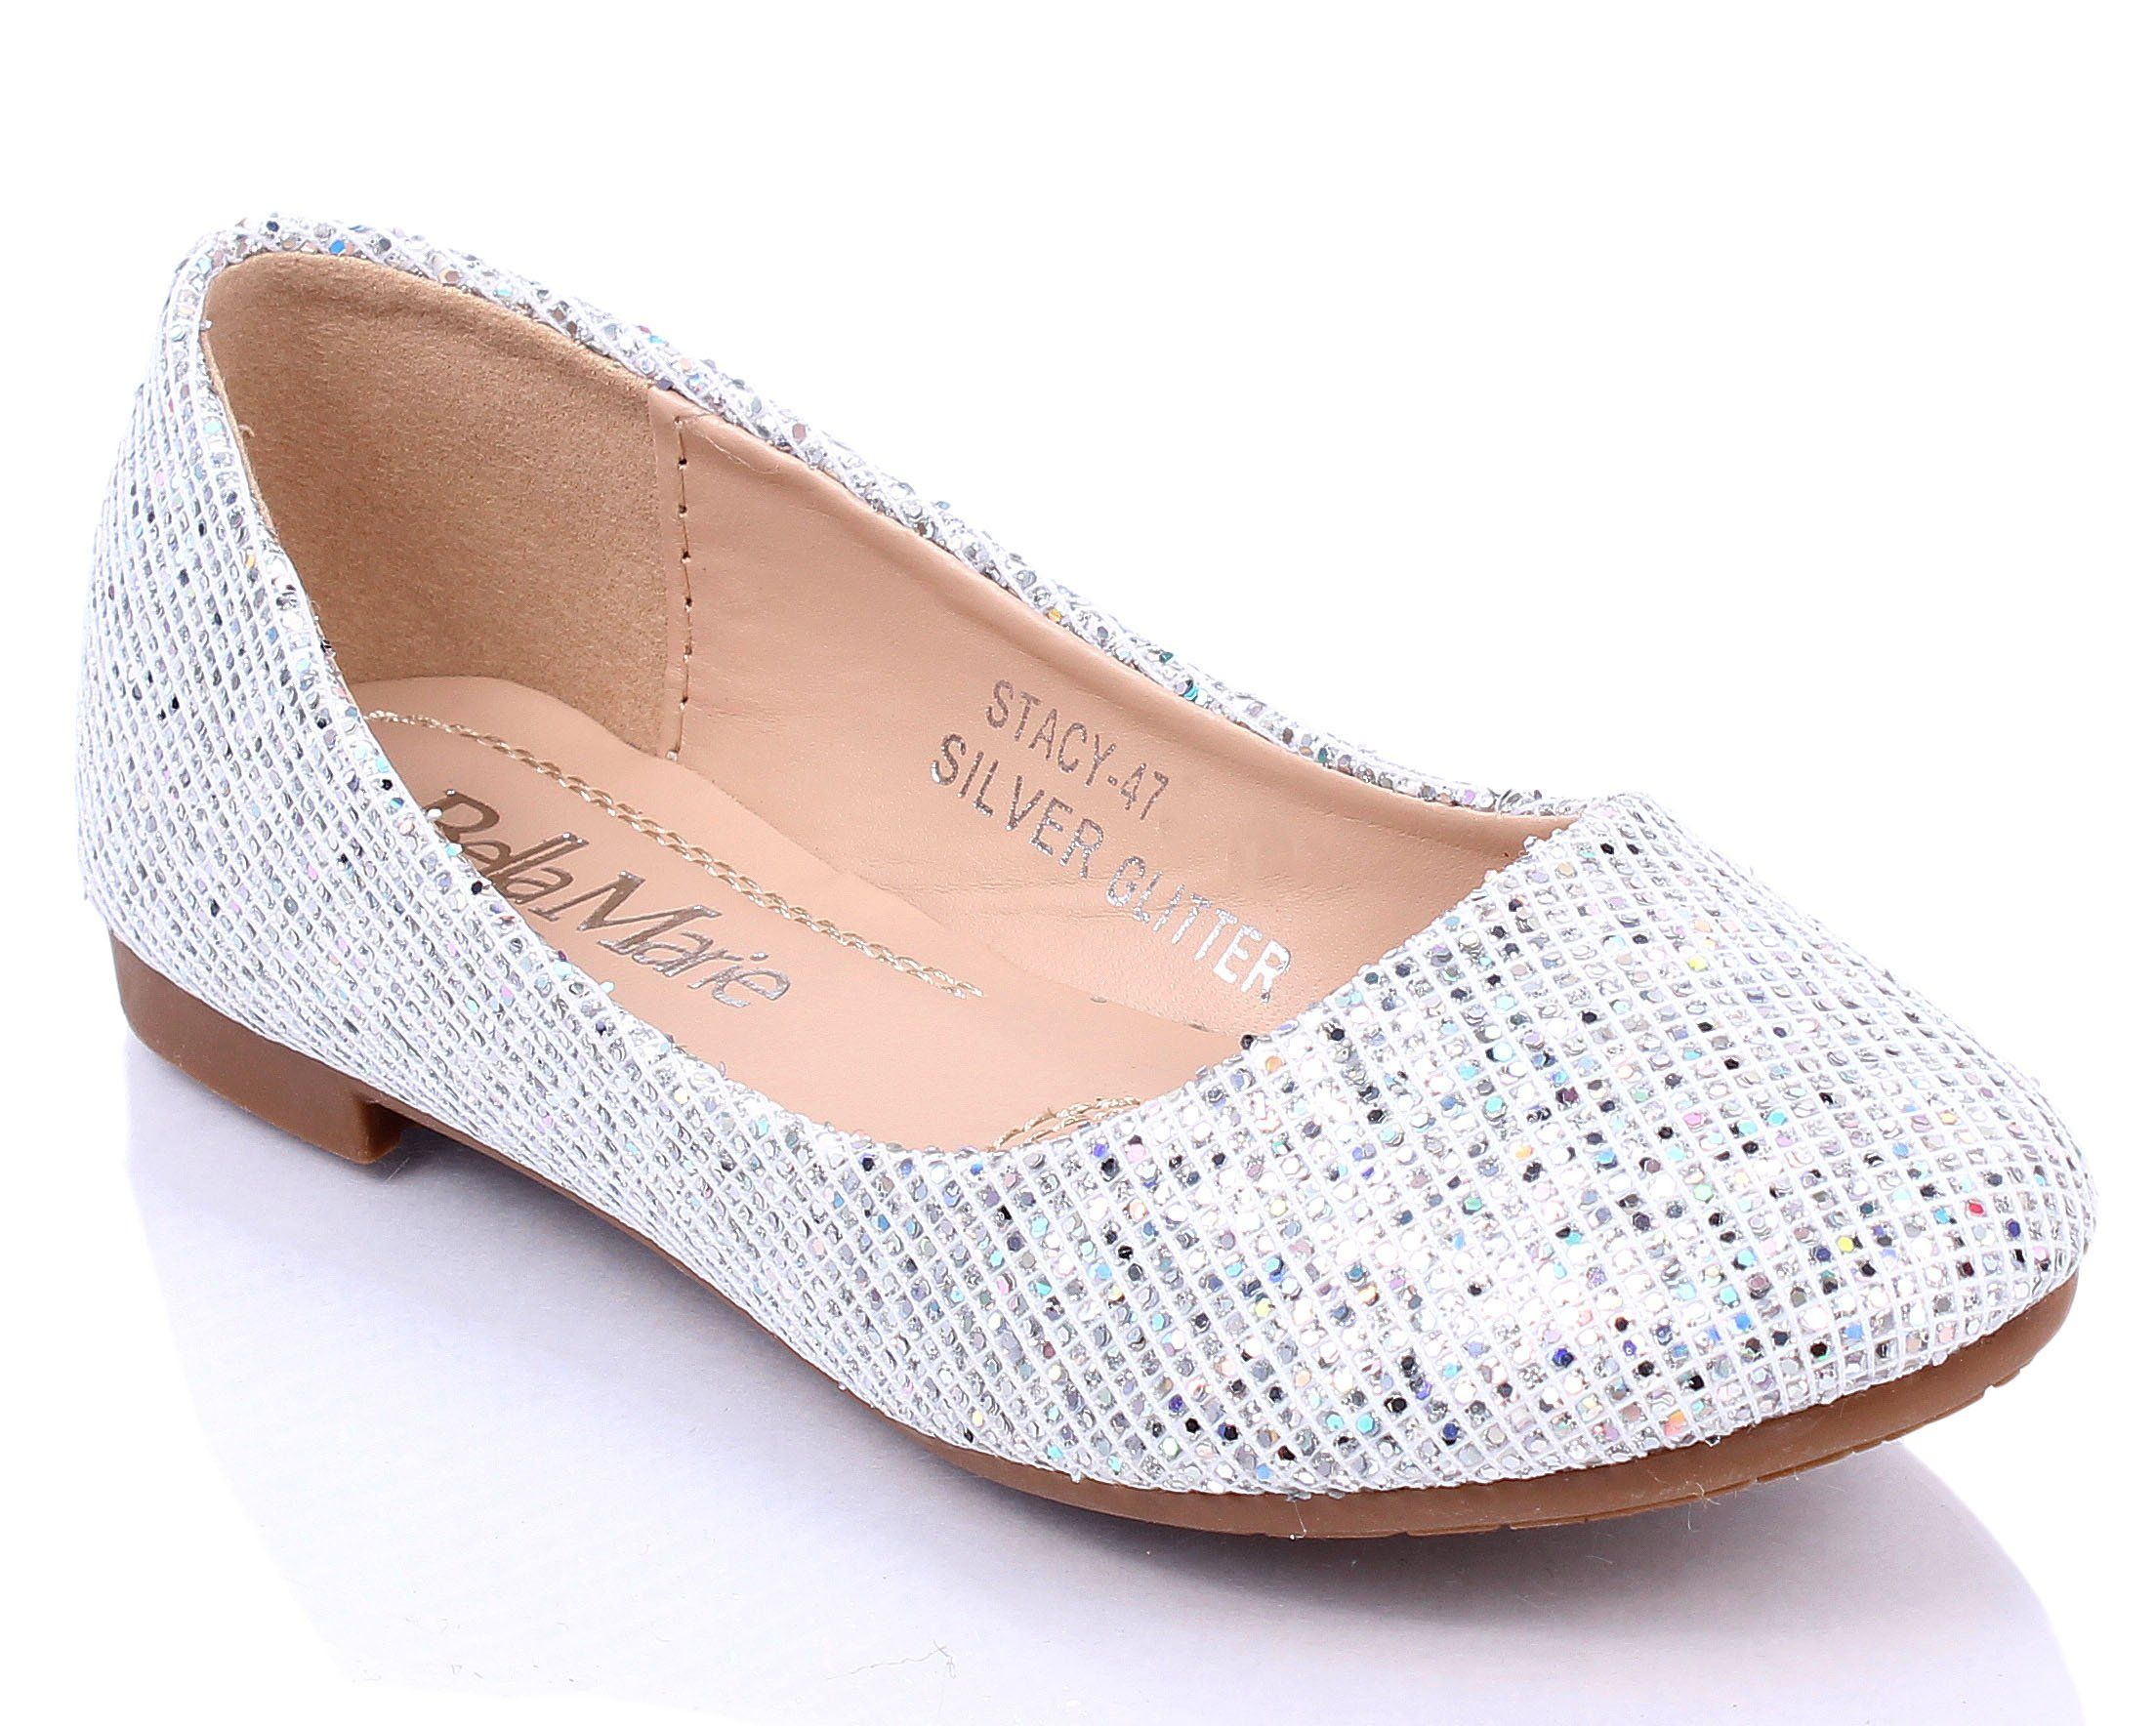 Fashion Round Toe Causal Sexy Padded Glitter Womens Easy Silp on Flats Shoes New Without Box